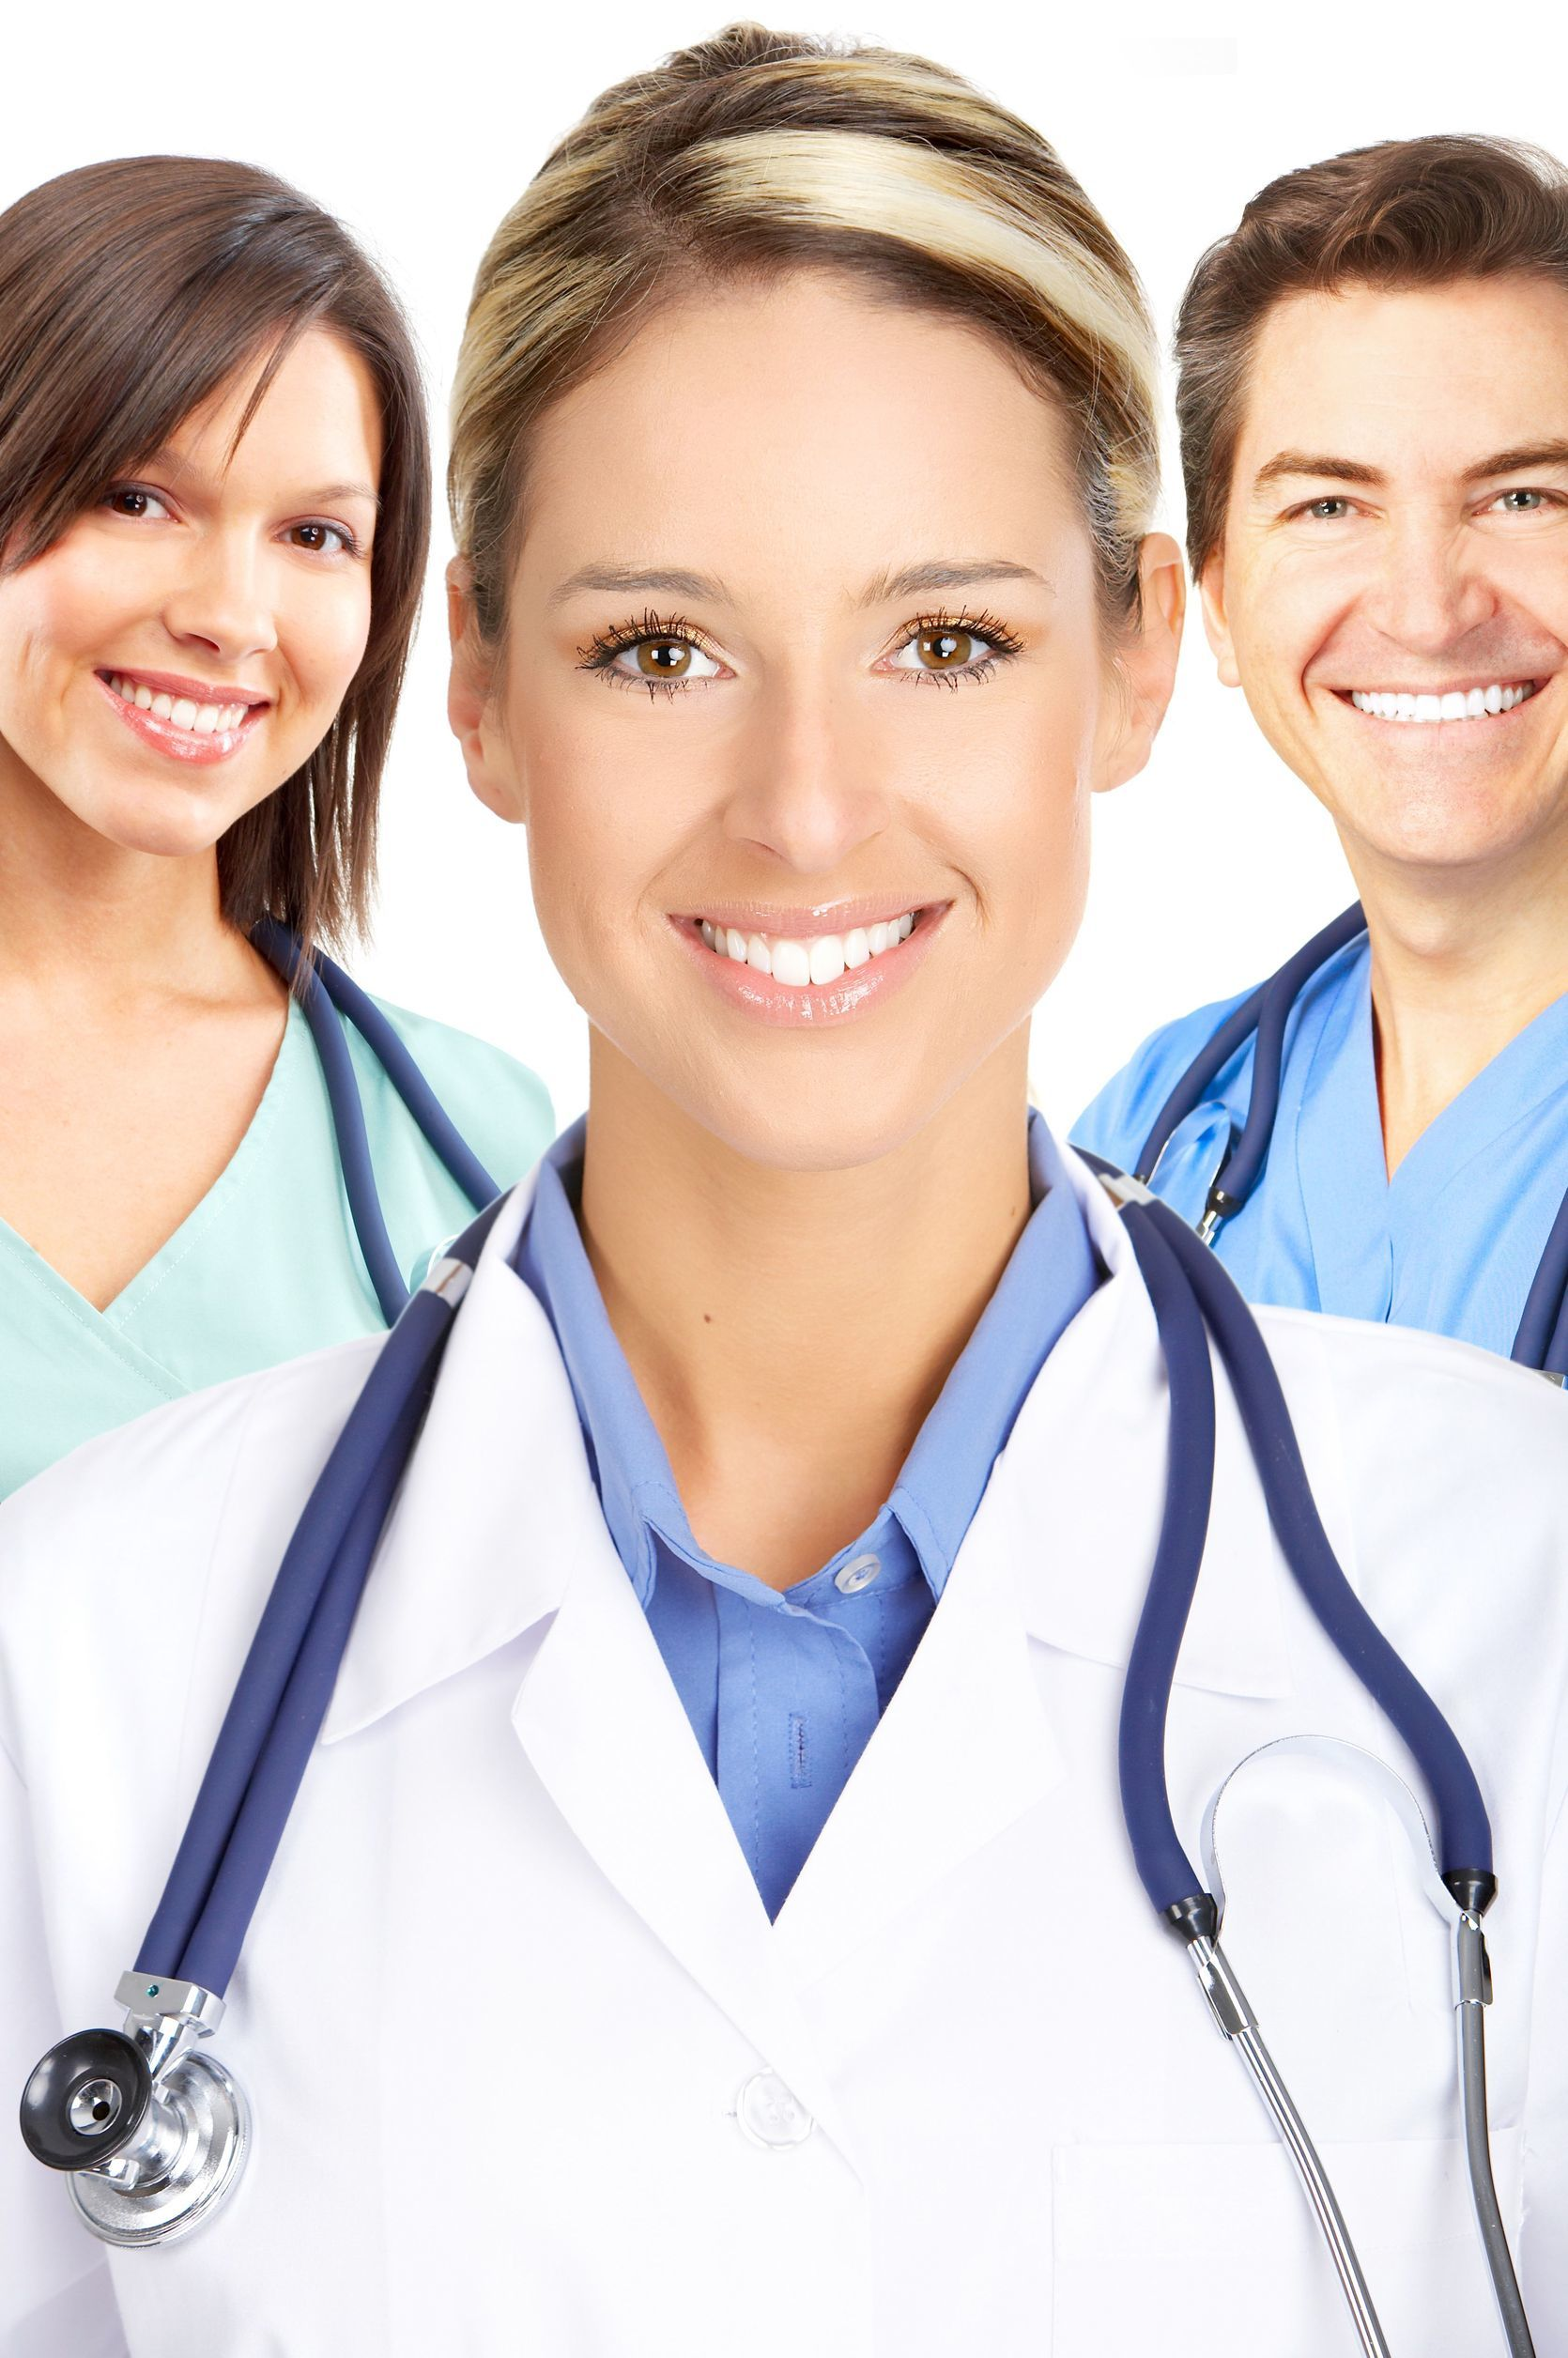 All Services Home Health Care Is an agency dedicated to